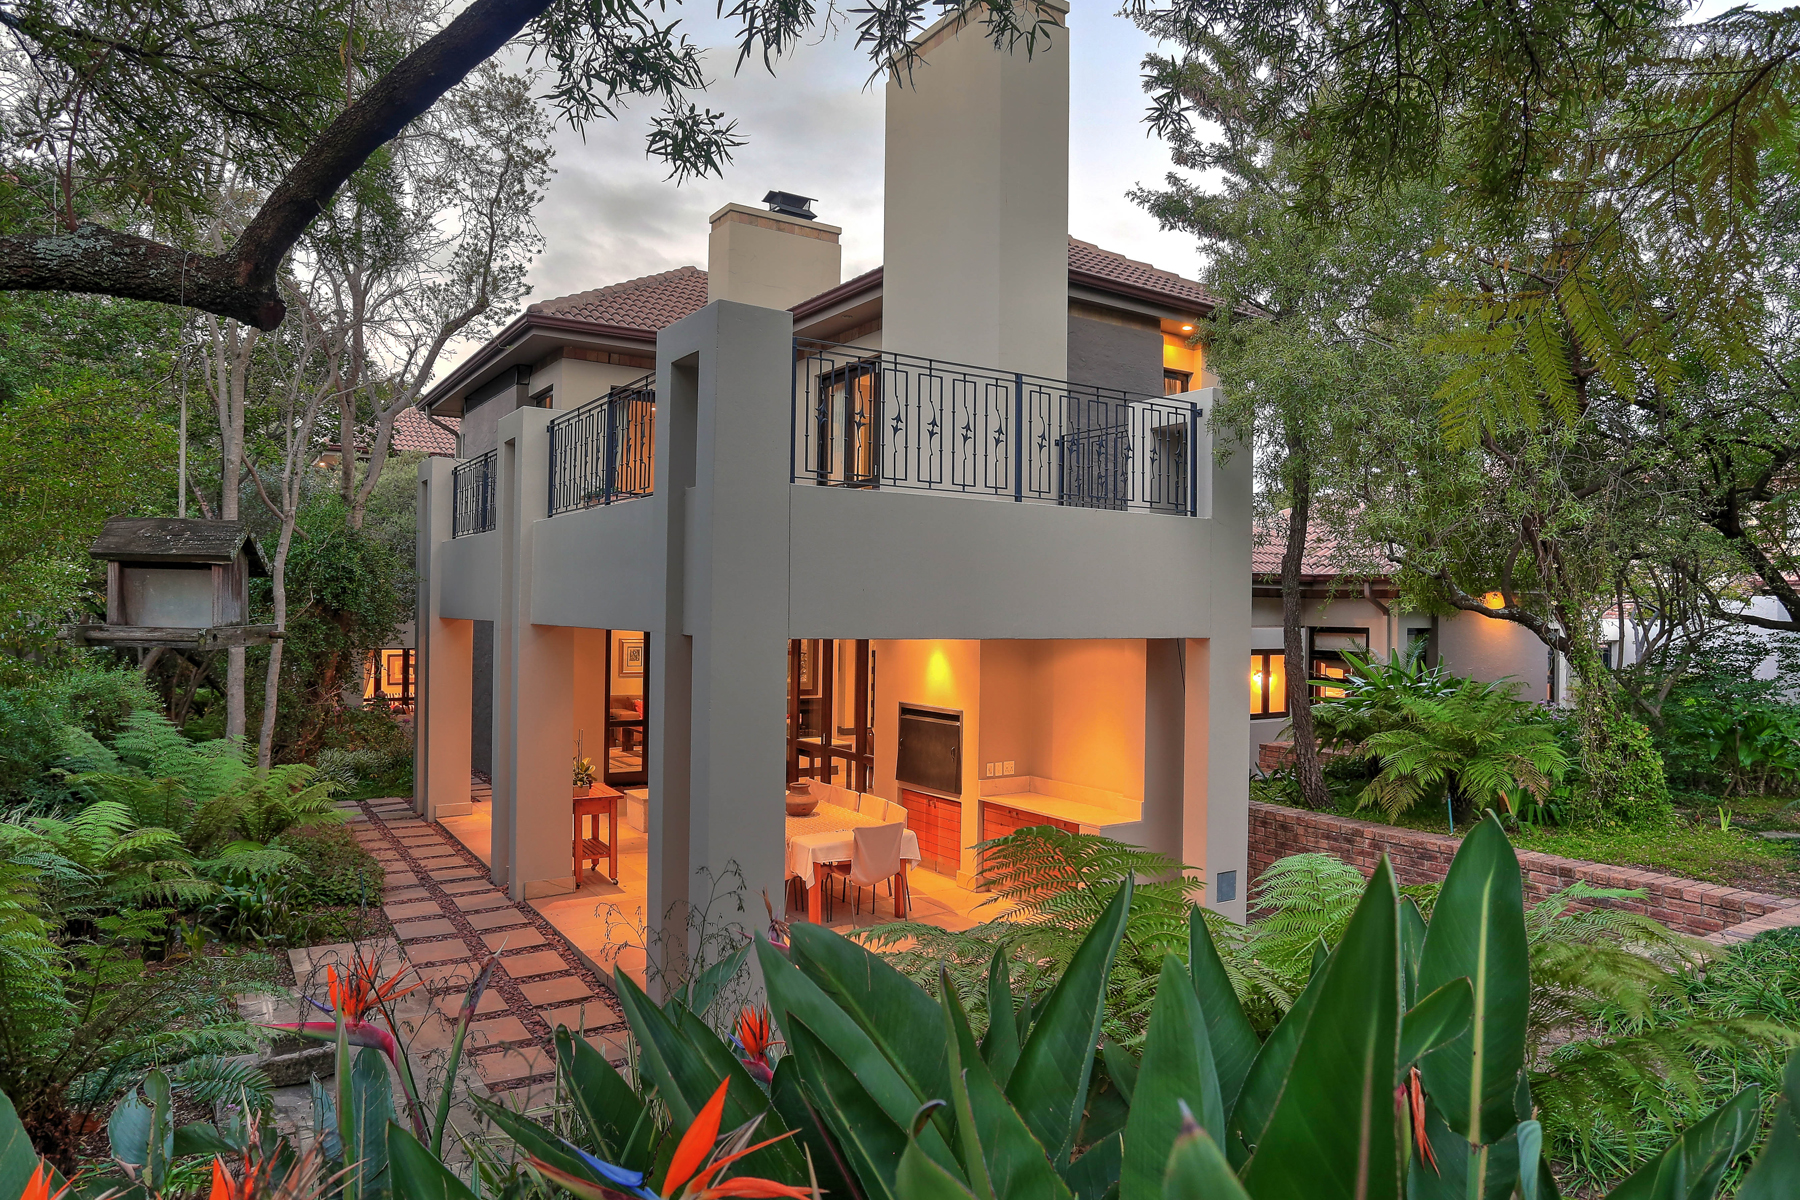 Single Family Home for Sale at Wilton Avenue Johannesburg, Gauteng South Africa